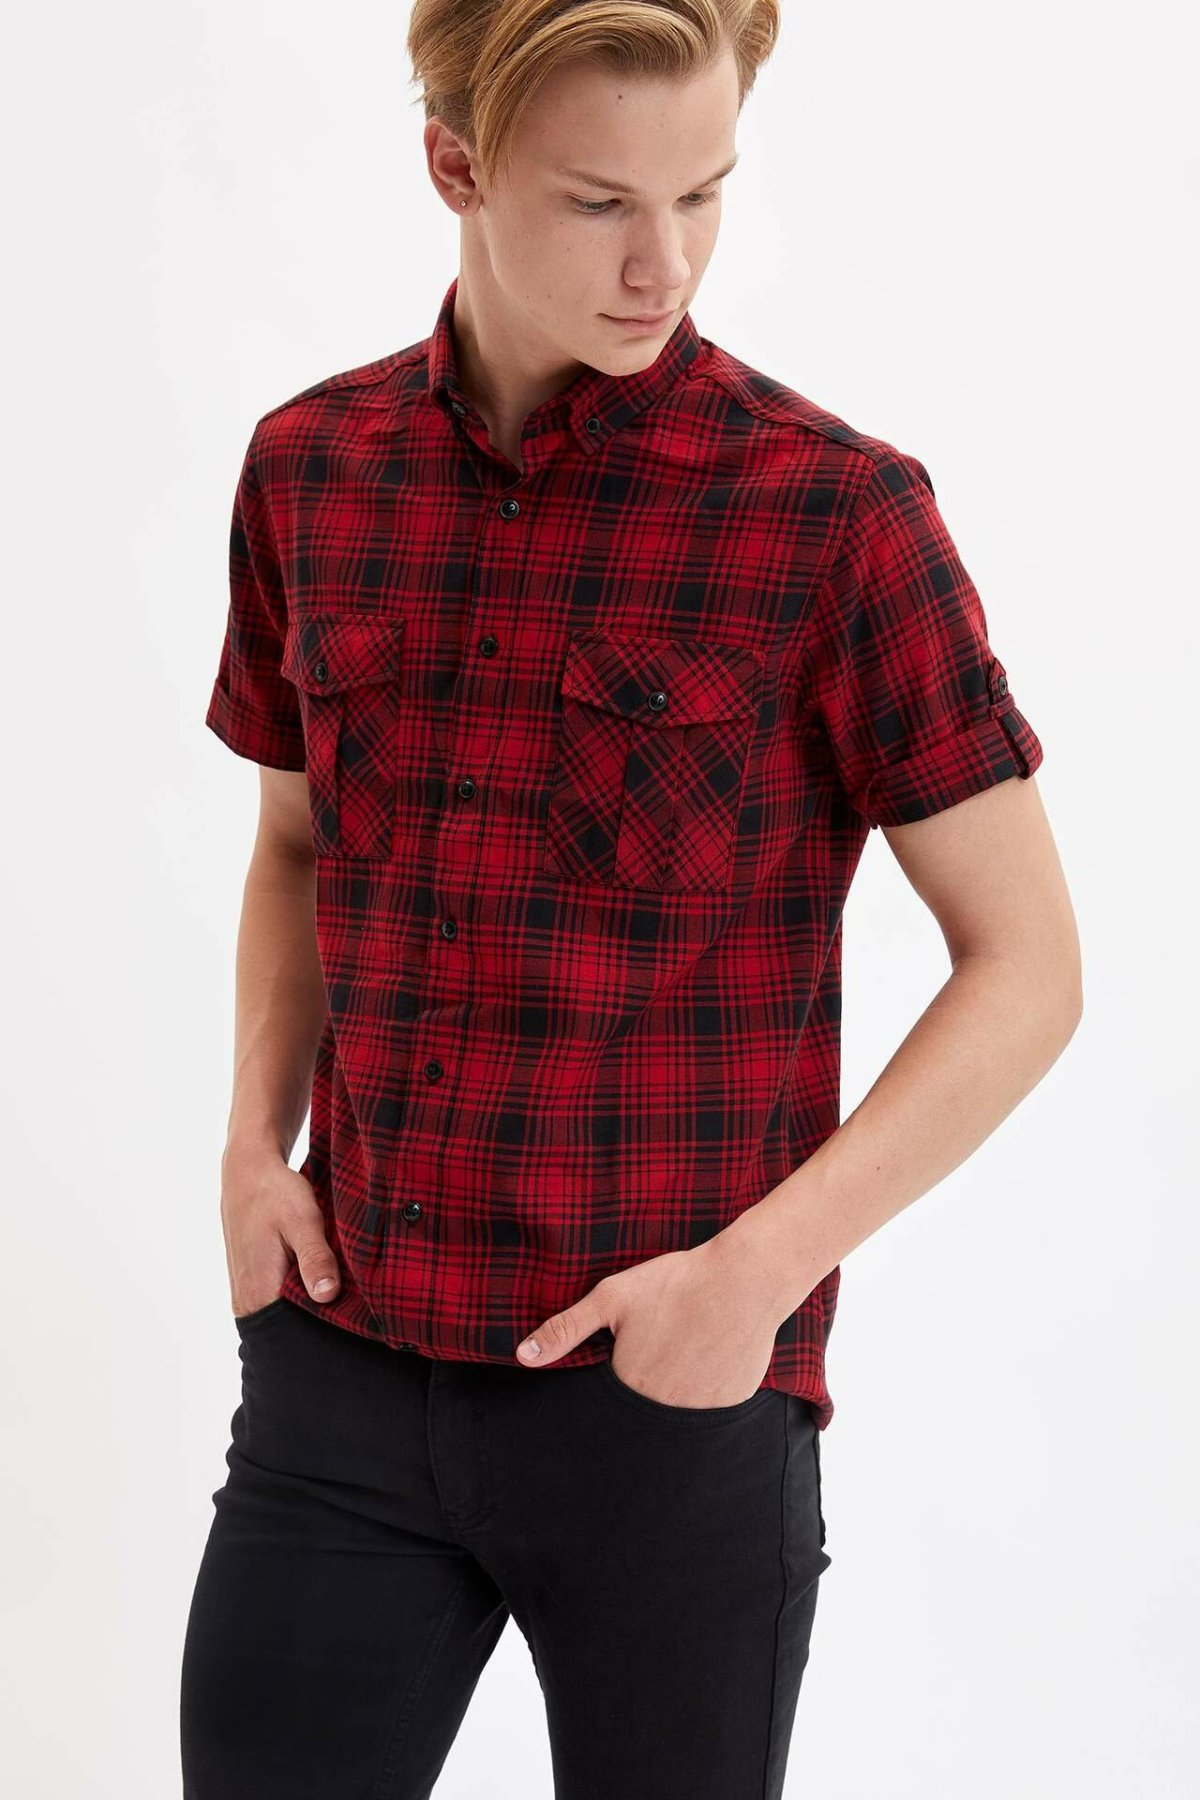 DeFacto Men Casual Plaid Lapel Collar Shirts Short Sleeve Simple Shirts Men Shirt Tops- K3894AZ19SM